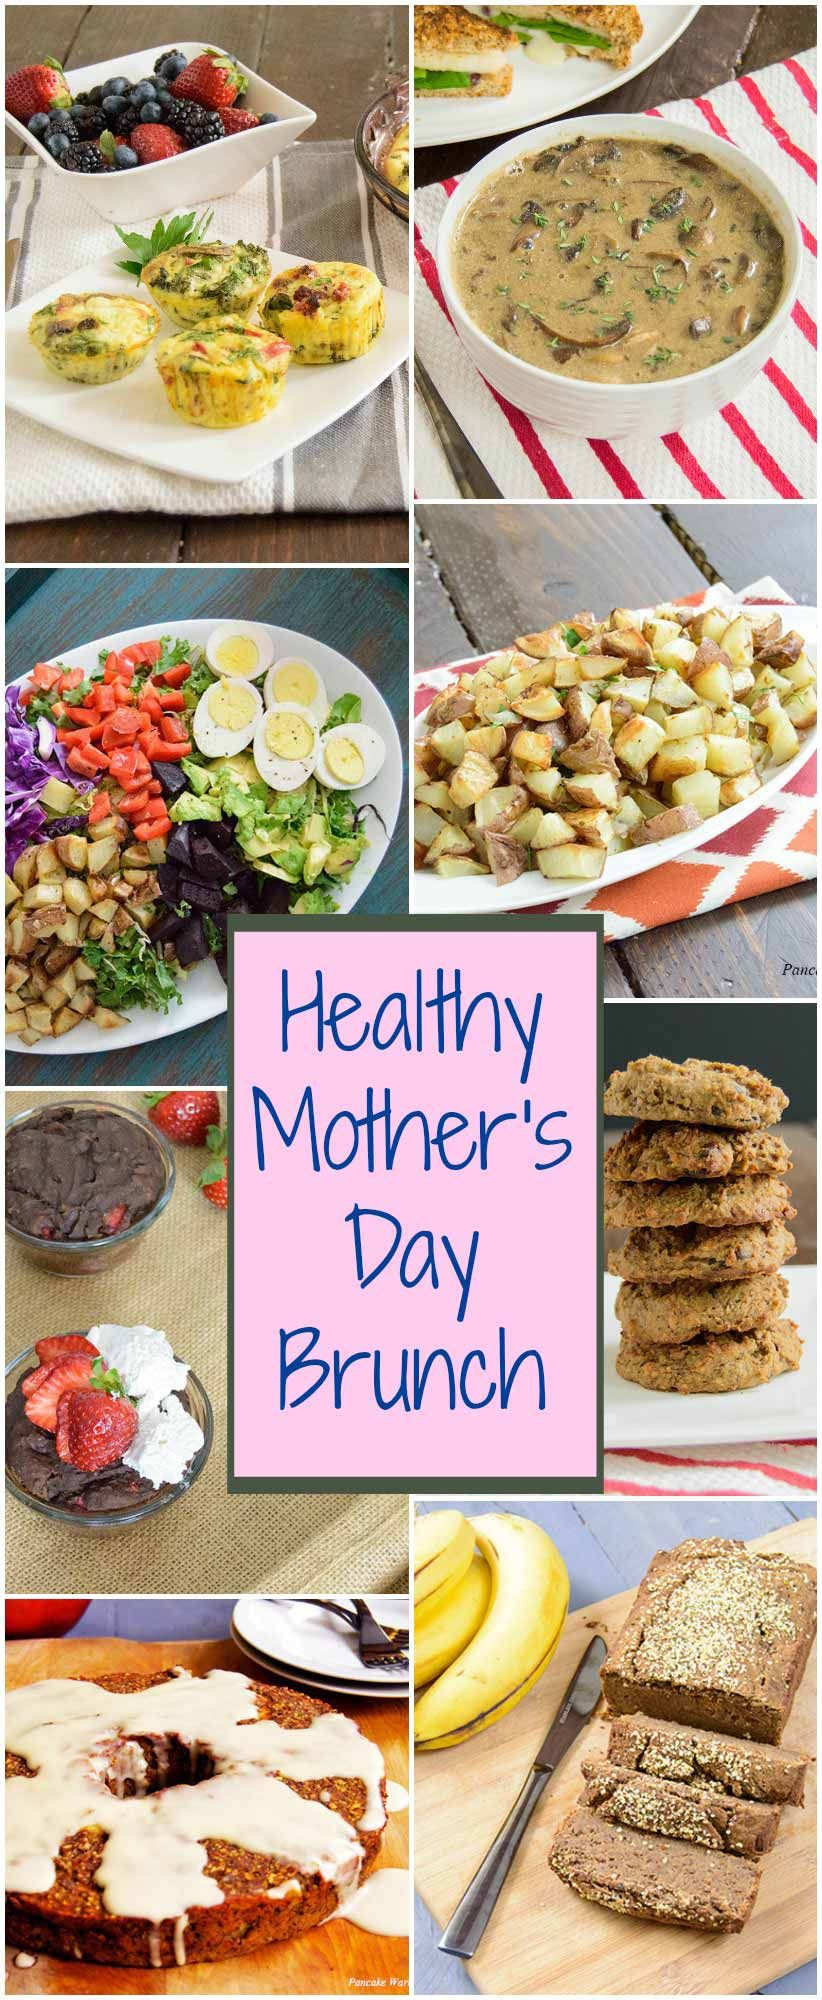 Mother's Day Brunch Ideas - healthy brunch ideas that can be made ahead of time   www.PancakeWarriors.com